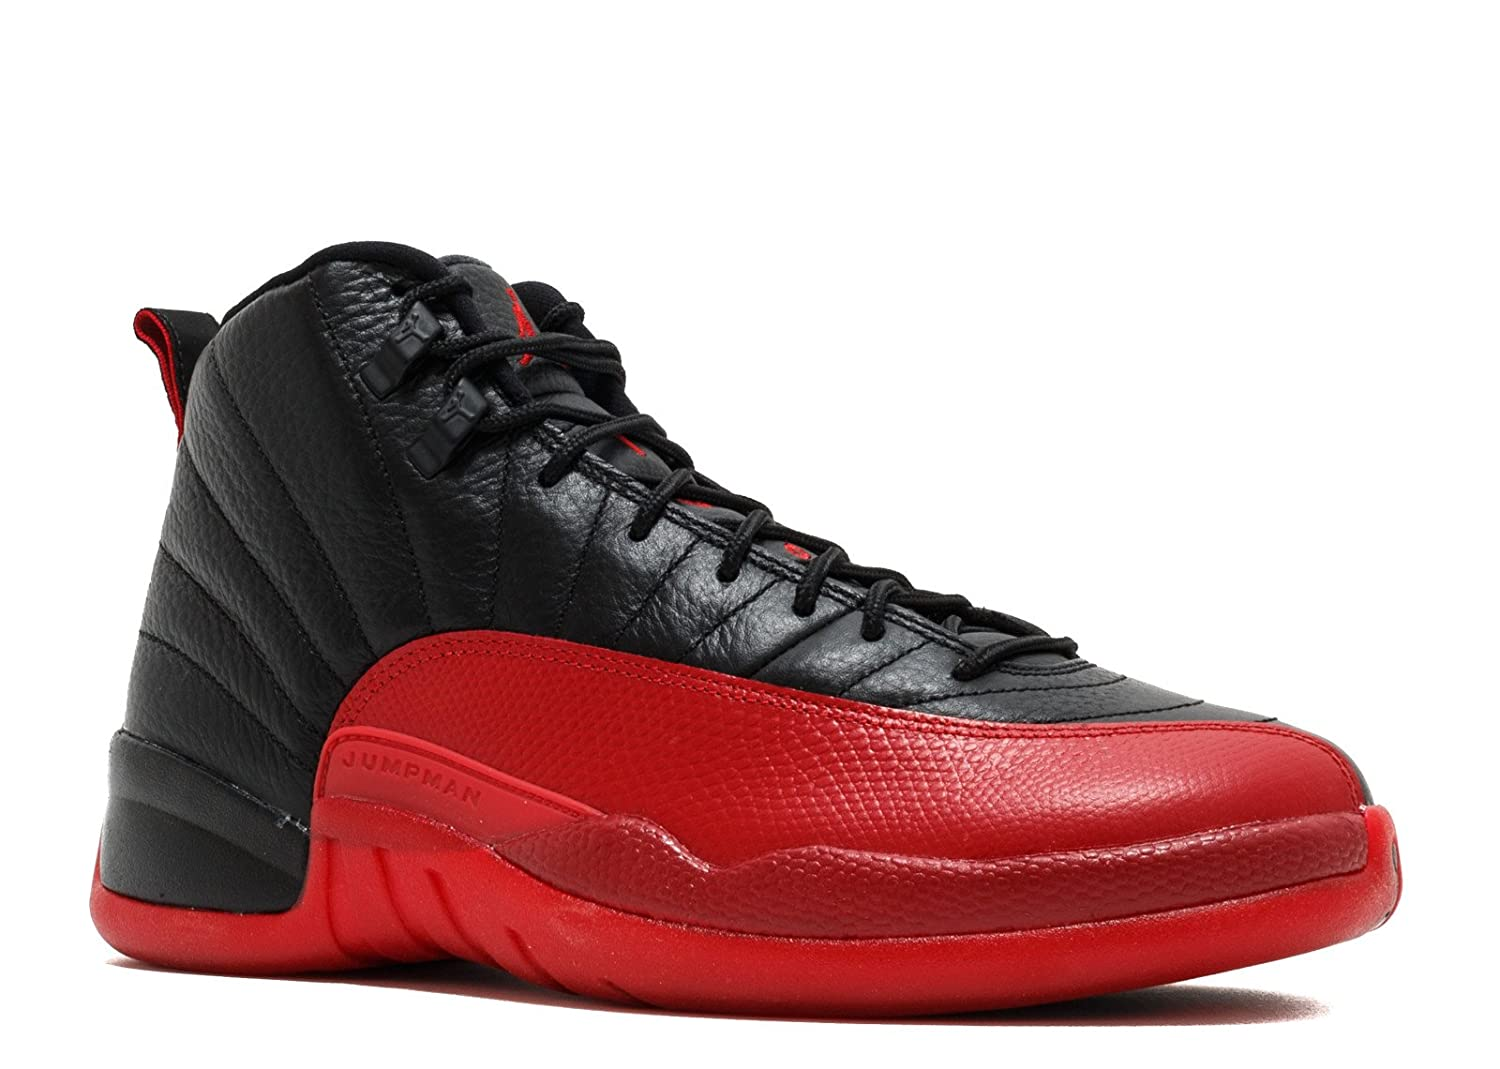 Nike Air Jordan 12 Retro Flu Game Black/Varsity Red Trainer  7.5|Black, Varsity Red